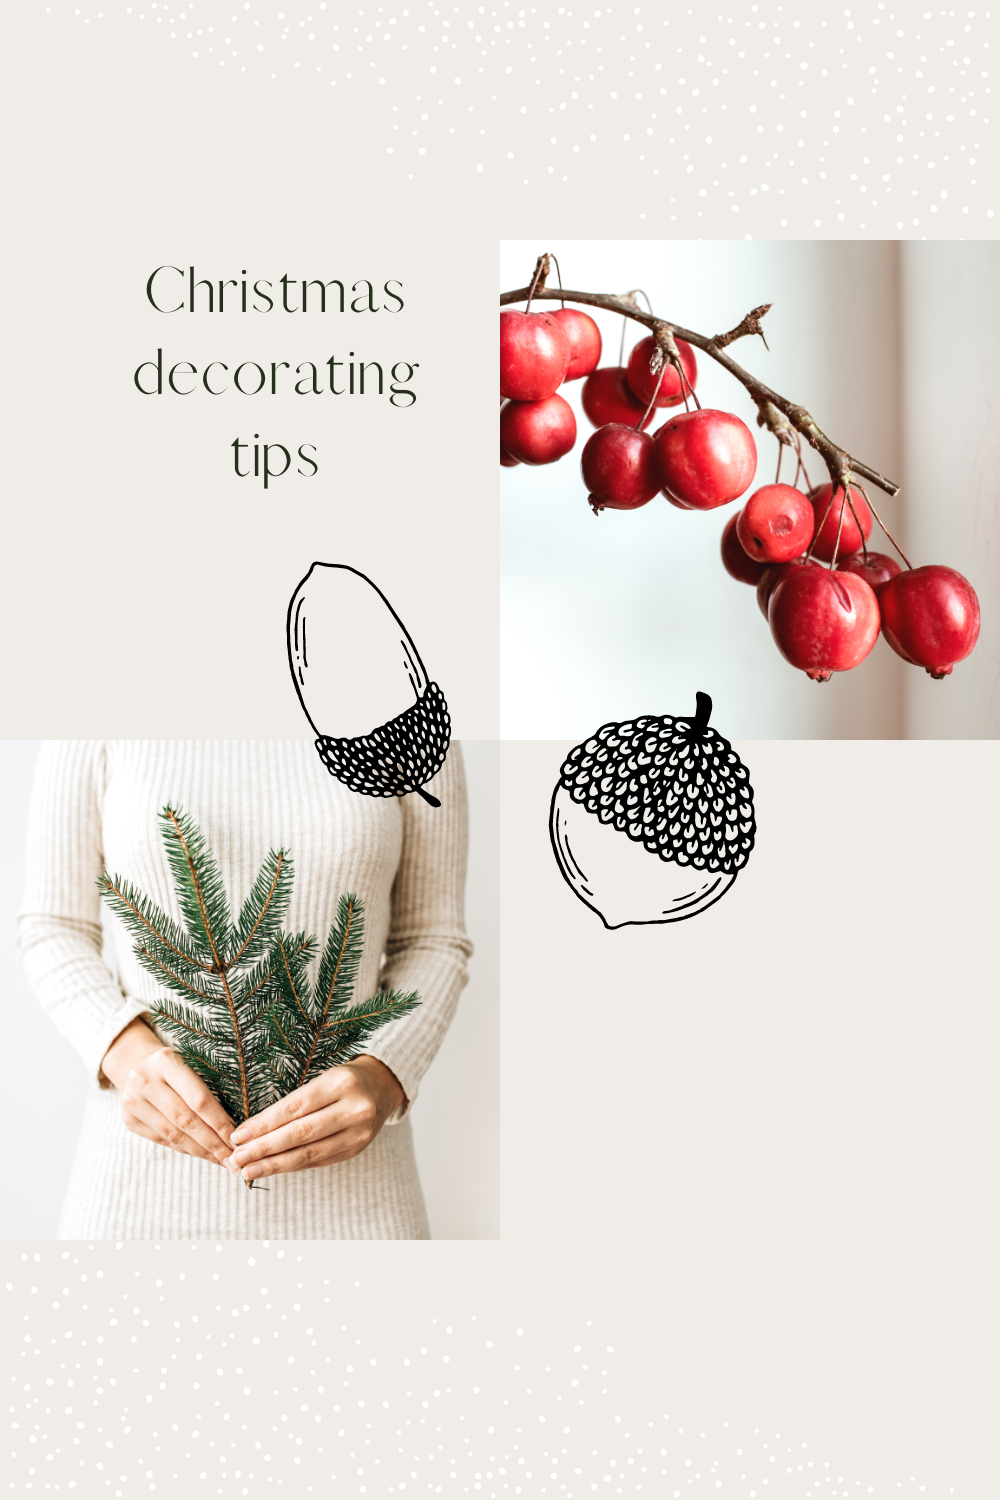 Christmas decorating tips. For the decorator with limited time and funds, tune in to the five senses to decorate the home for the holidays.